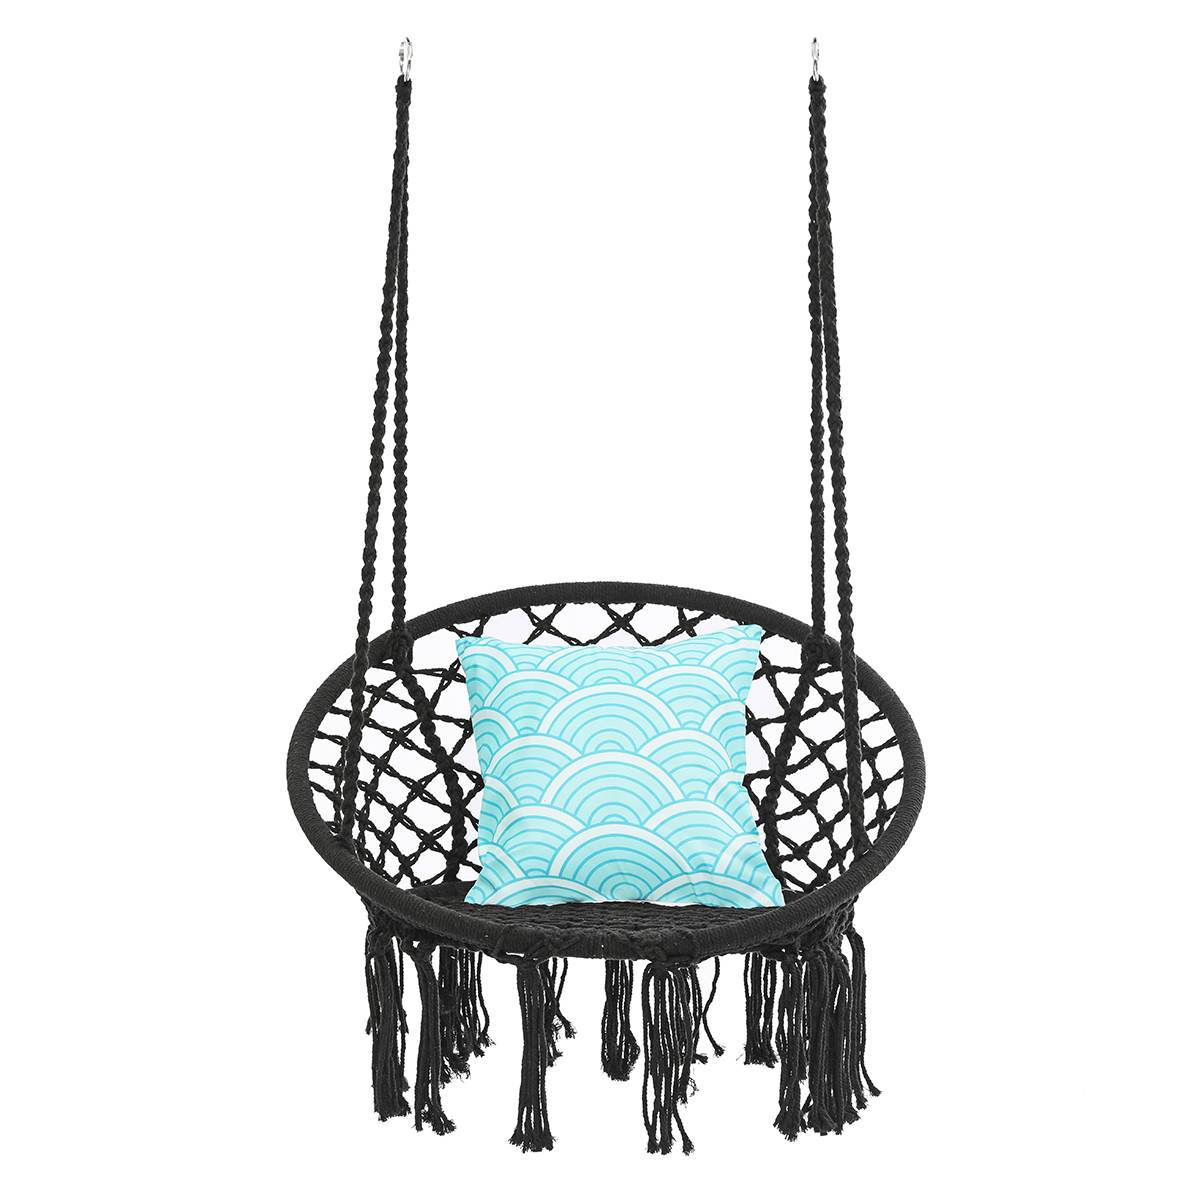 Round Hammock Round Hammock Swing Hanging Chair Outdoor Indoor Furniture Hammock Chair for Garden Dormitory Child Adult